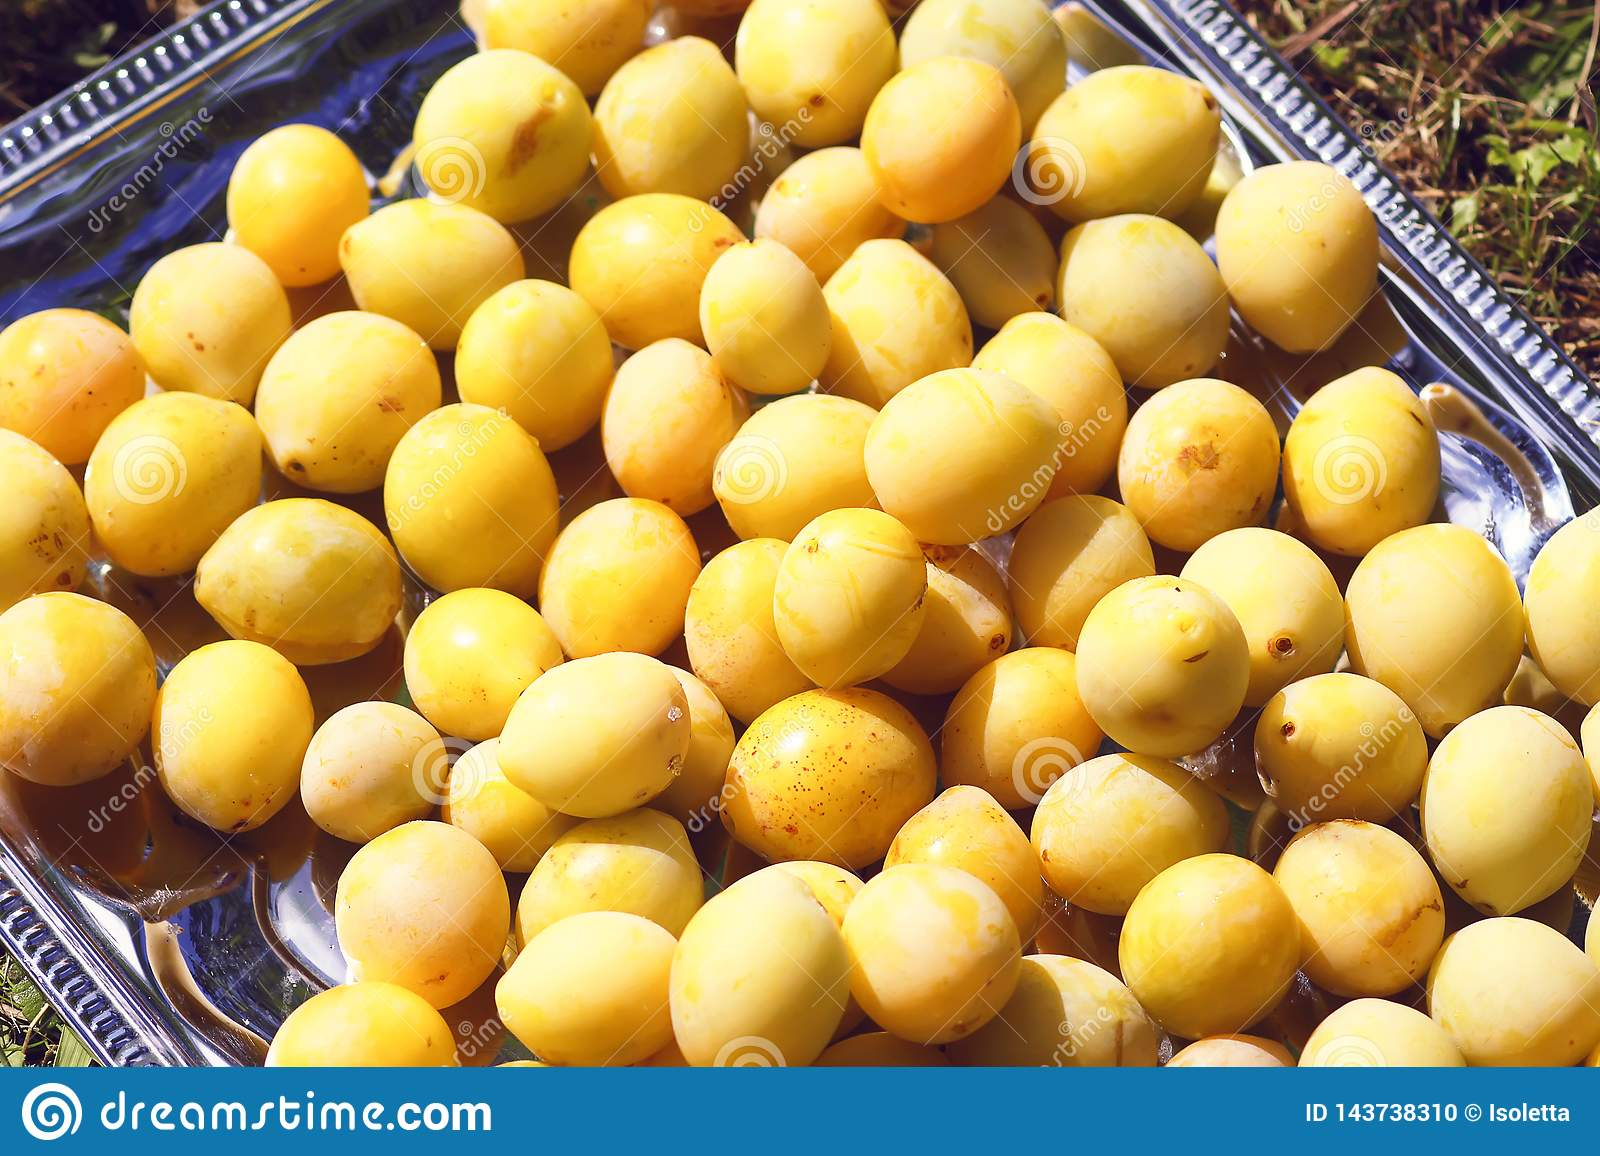 Yellow plums close up. Sweet ripe fruits